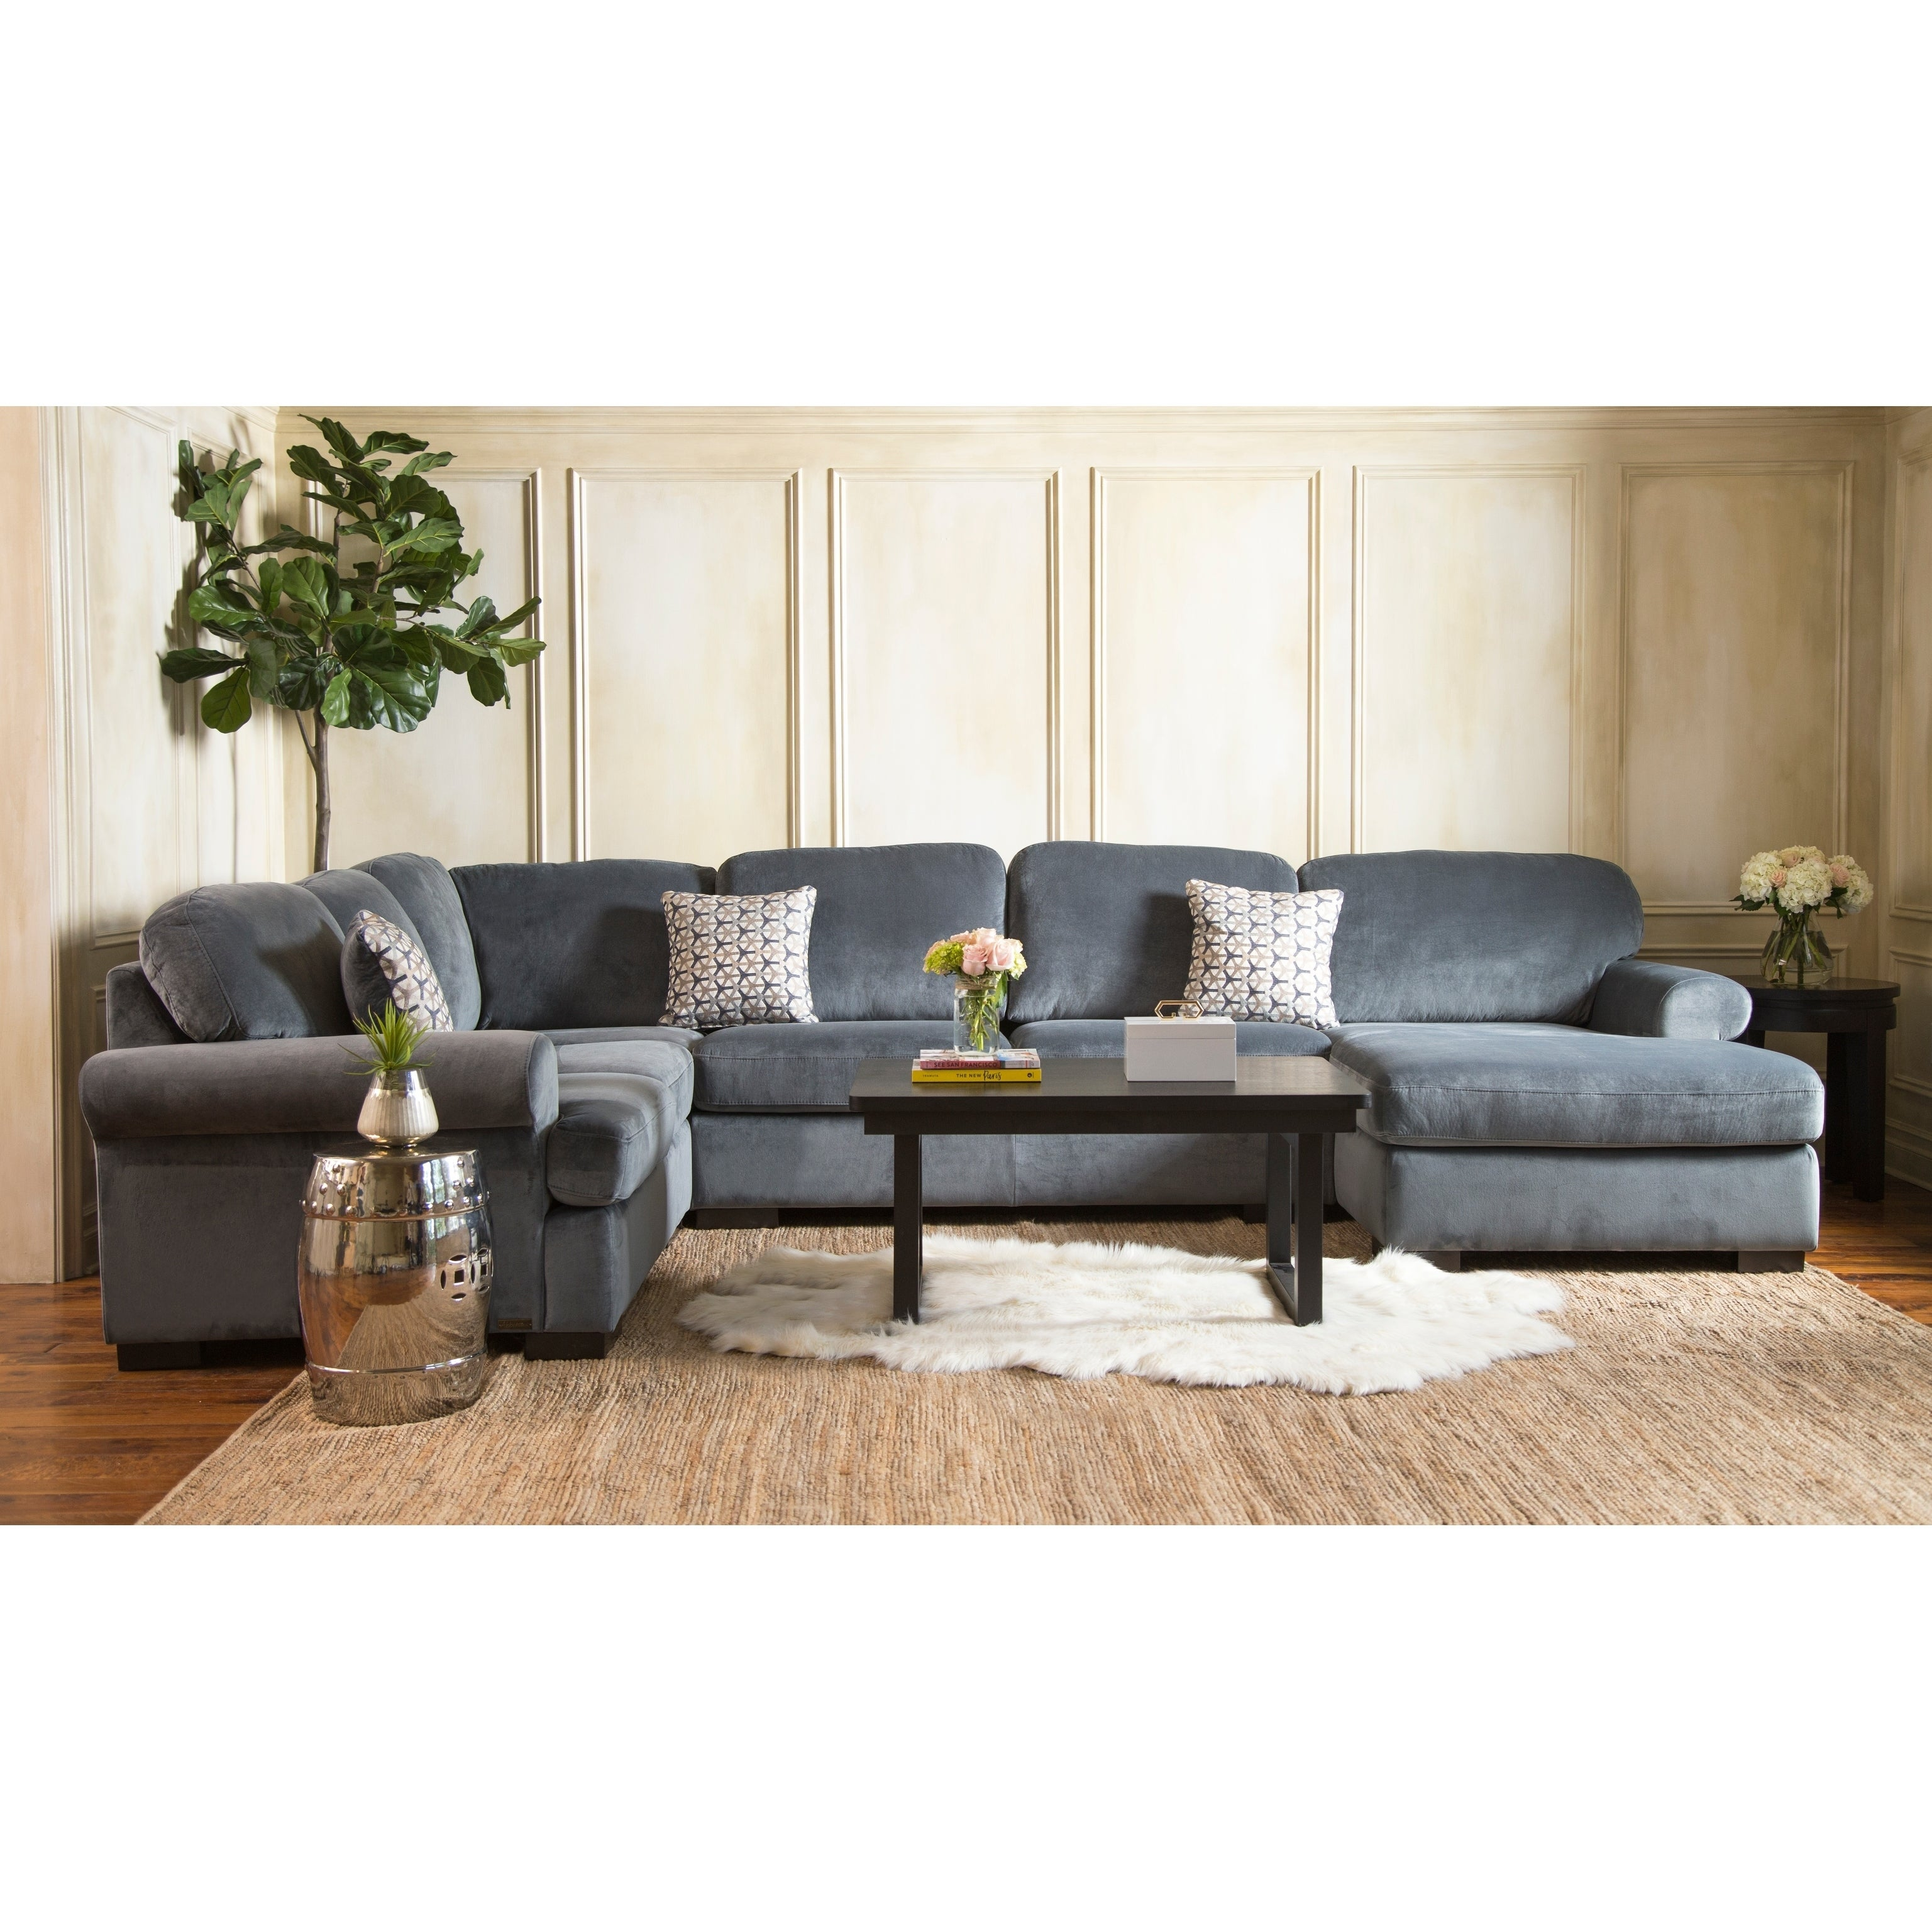 Abbyson Living Westbury Leather Sectional Sofa Black